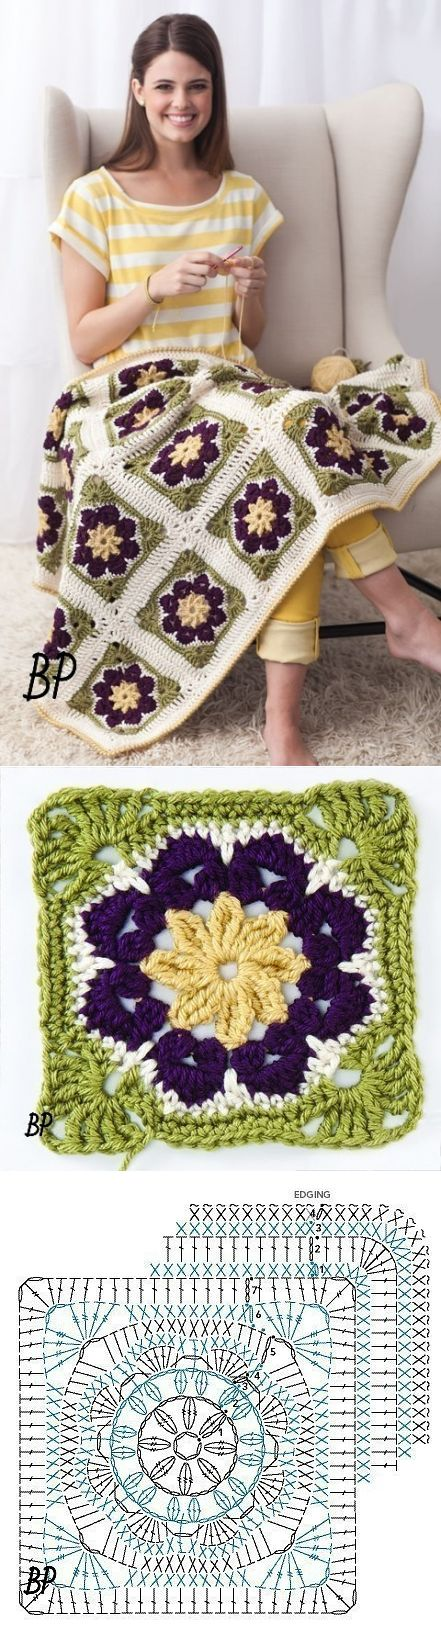 Beautiful crochet blanket with patterns